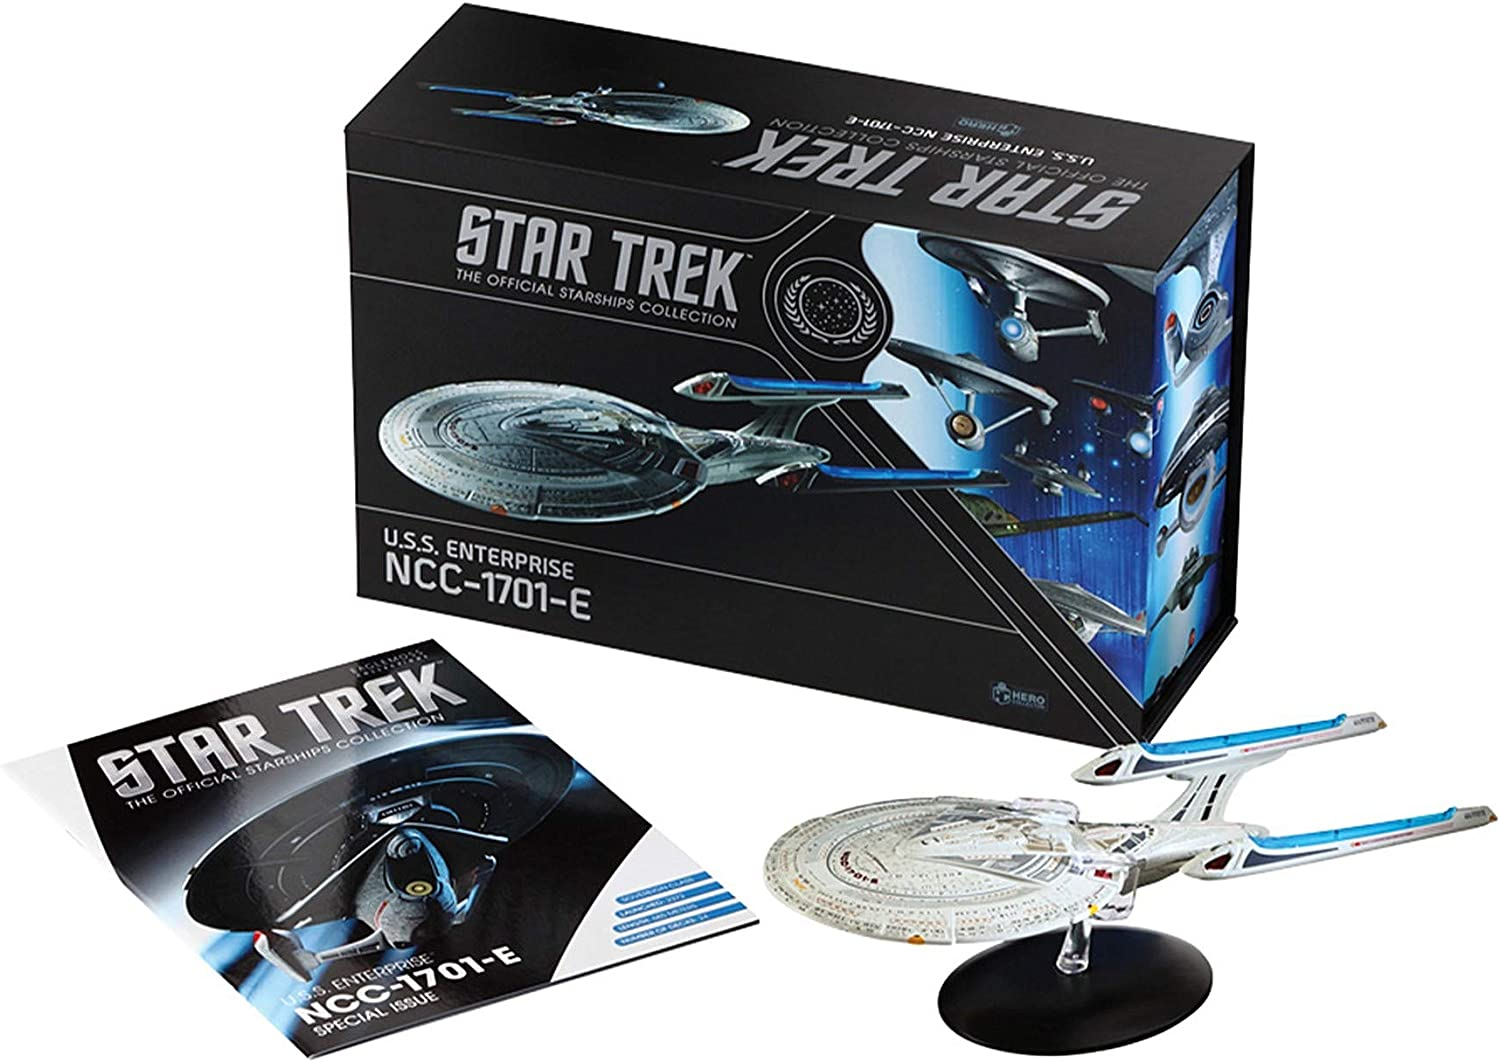 Star Trek The Official Starships Collection   U.S.S. Enterprise NCC-1701-E 10.5-inch XL Edition Model Ship Box by Eaglemoss Hero Collector: Toys & Games